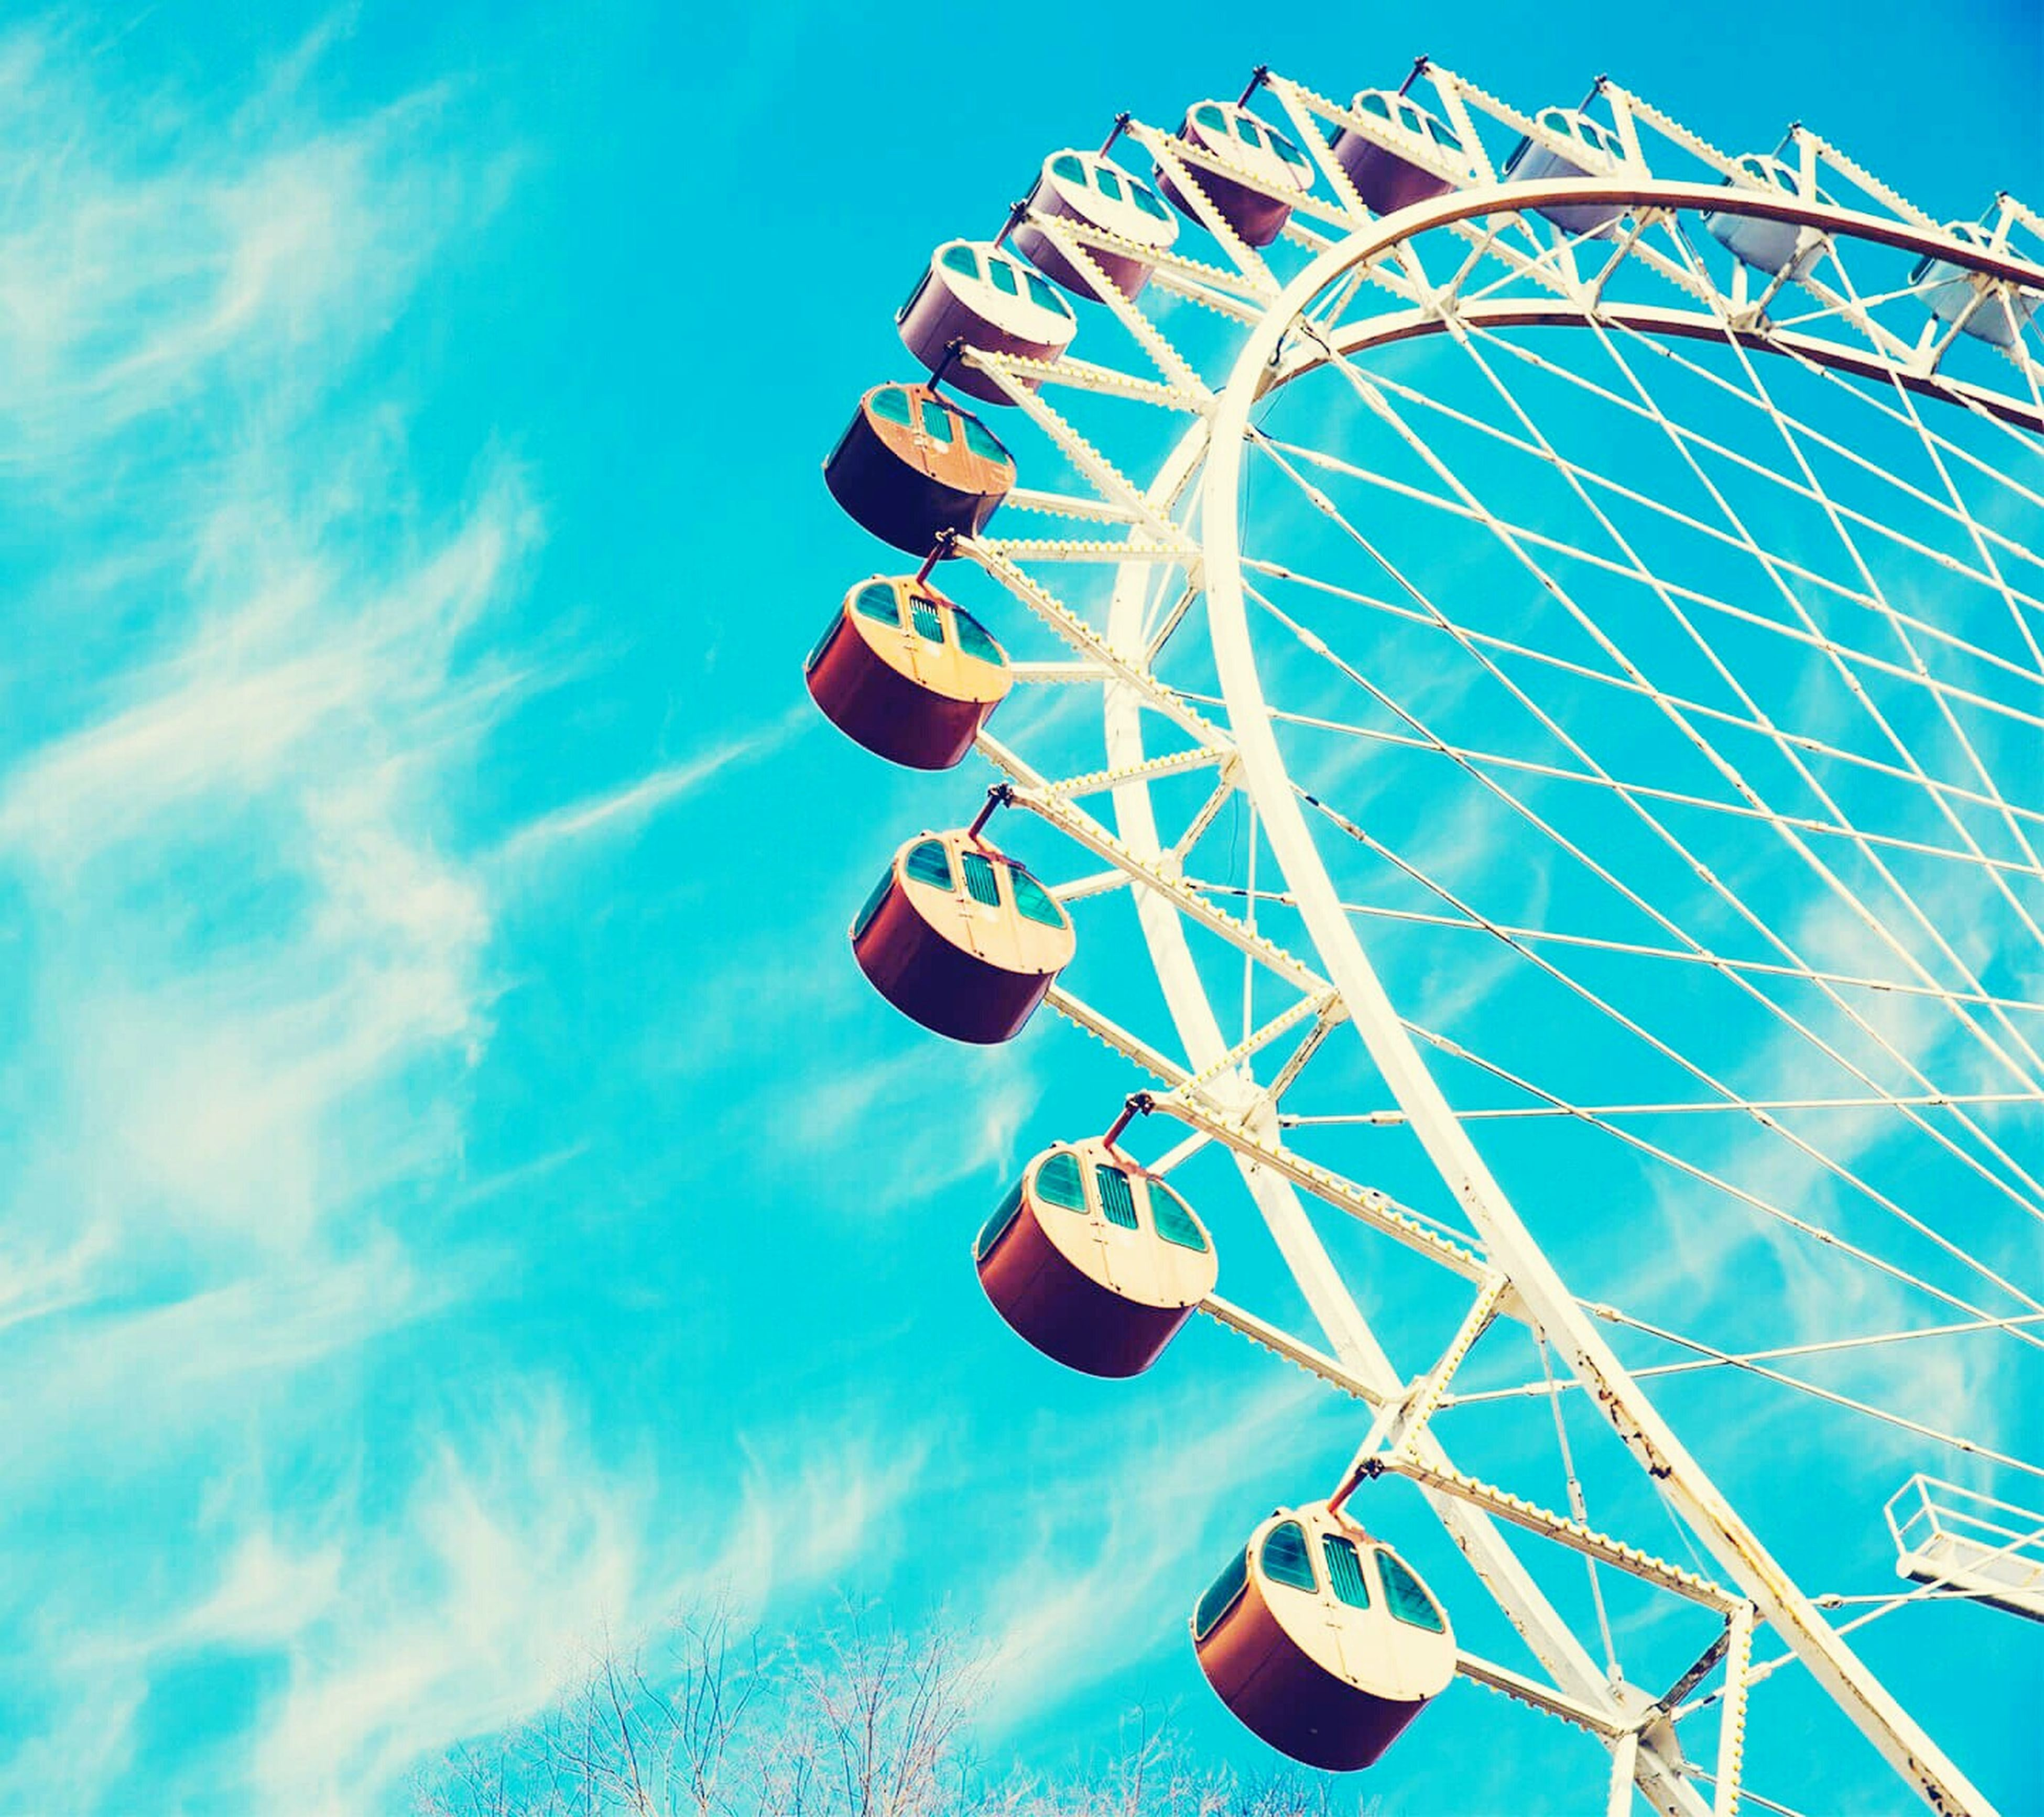 amusement park, low angle view, amusement park ride, ferris wheel, arts culture and entertainment, blue, sky, fun, enjoyment, outdoors, day, chain swing ride, multi colored, cloud - sky, circle, no people, leisure activity, metal, fairground ride, pattern